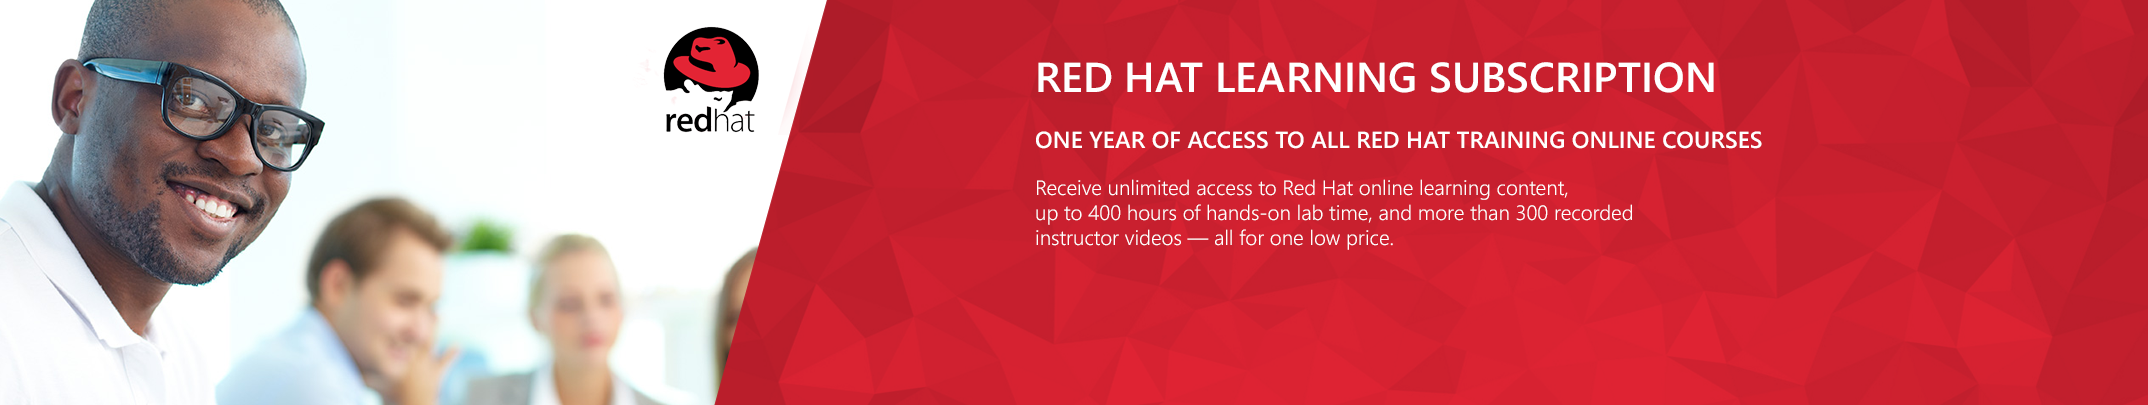 red-hat-learning-subscription